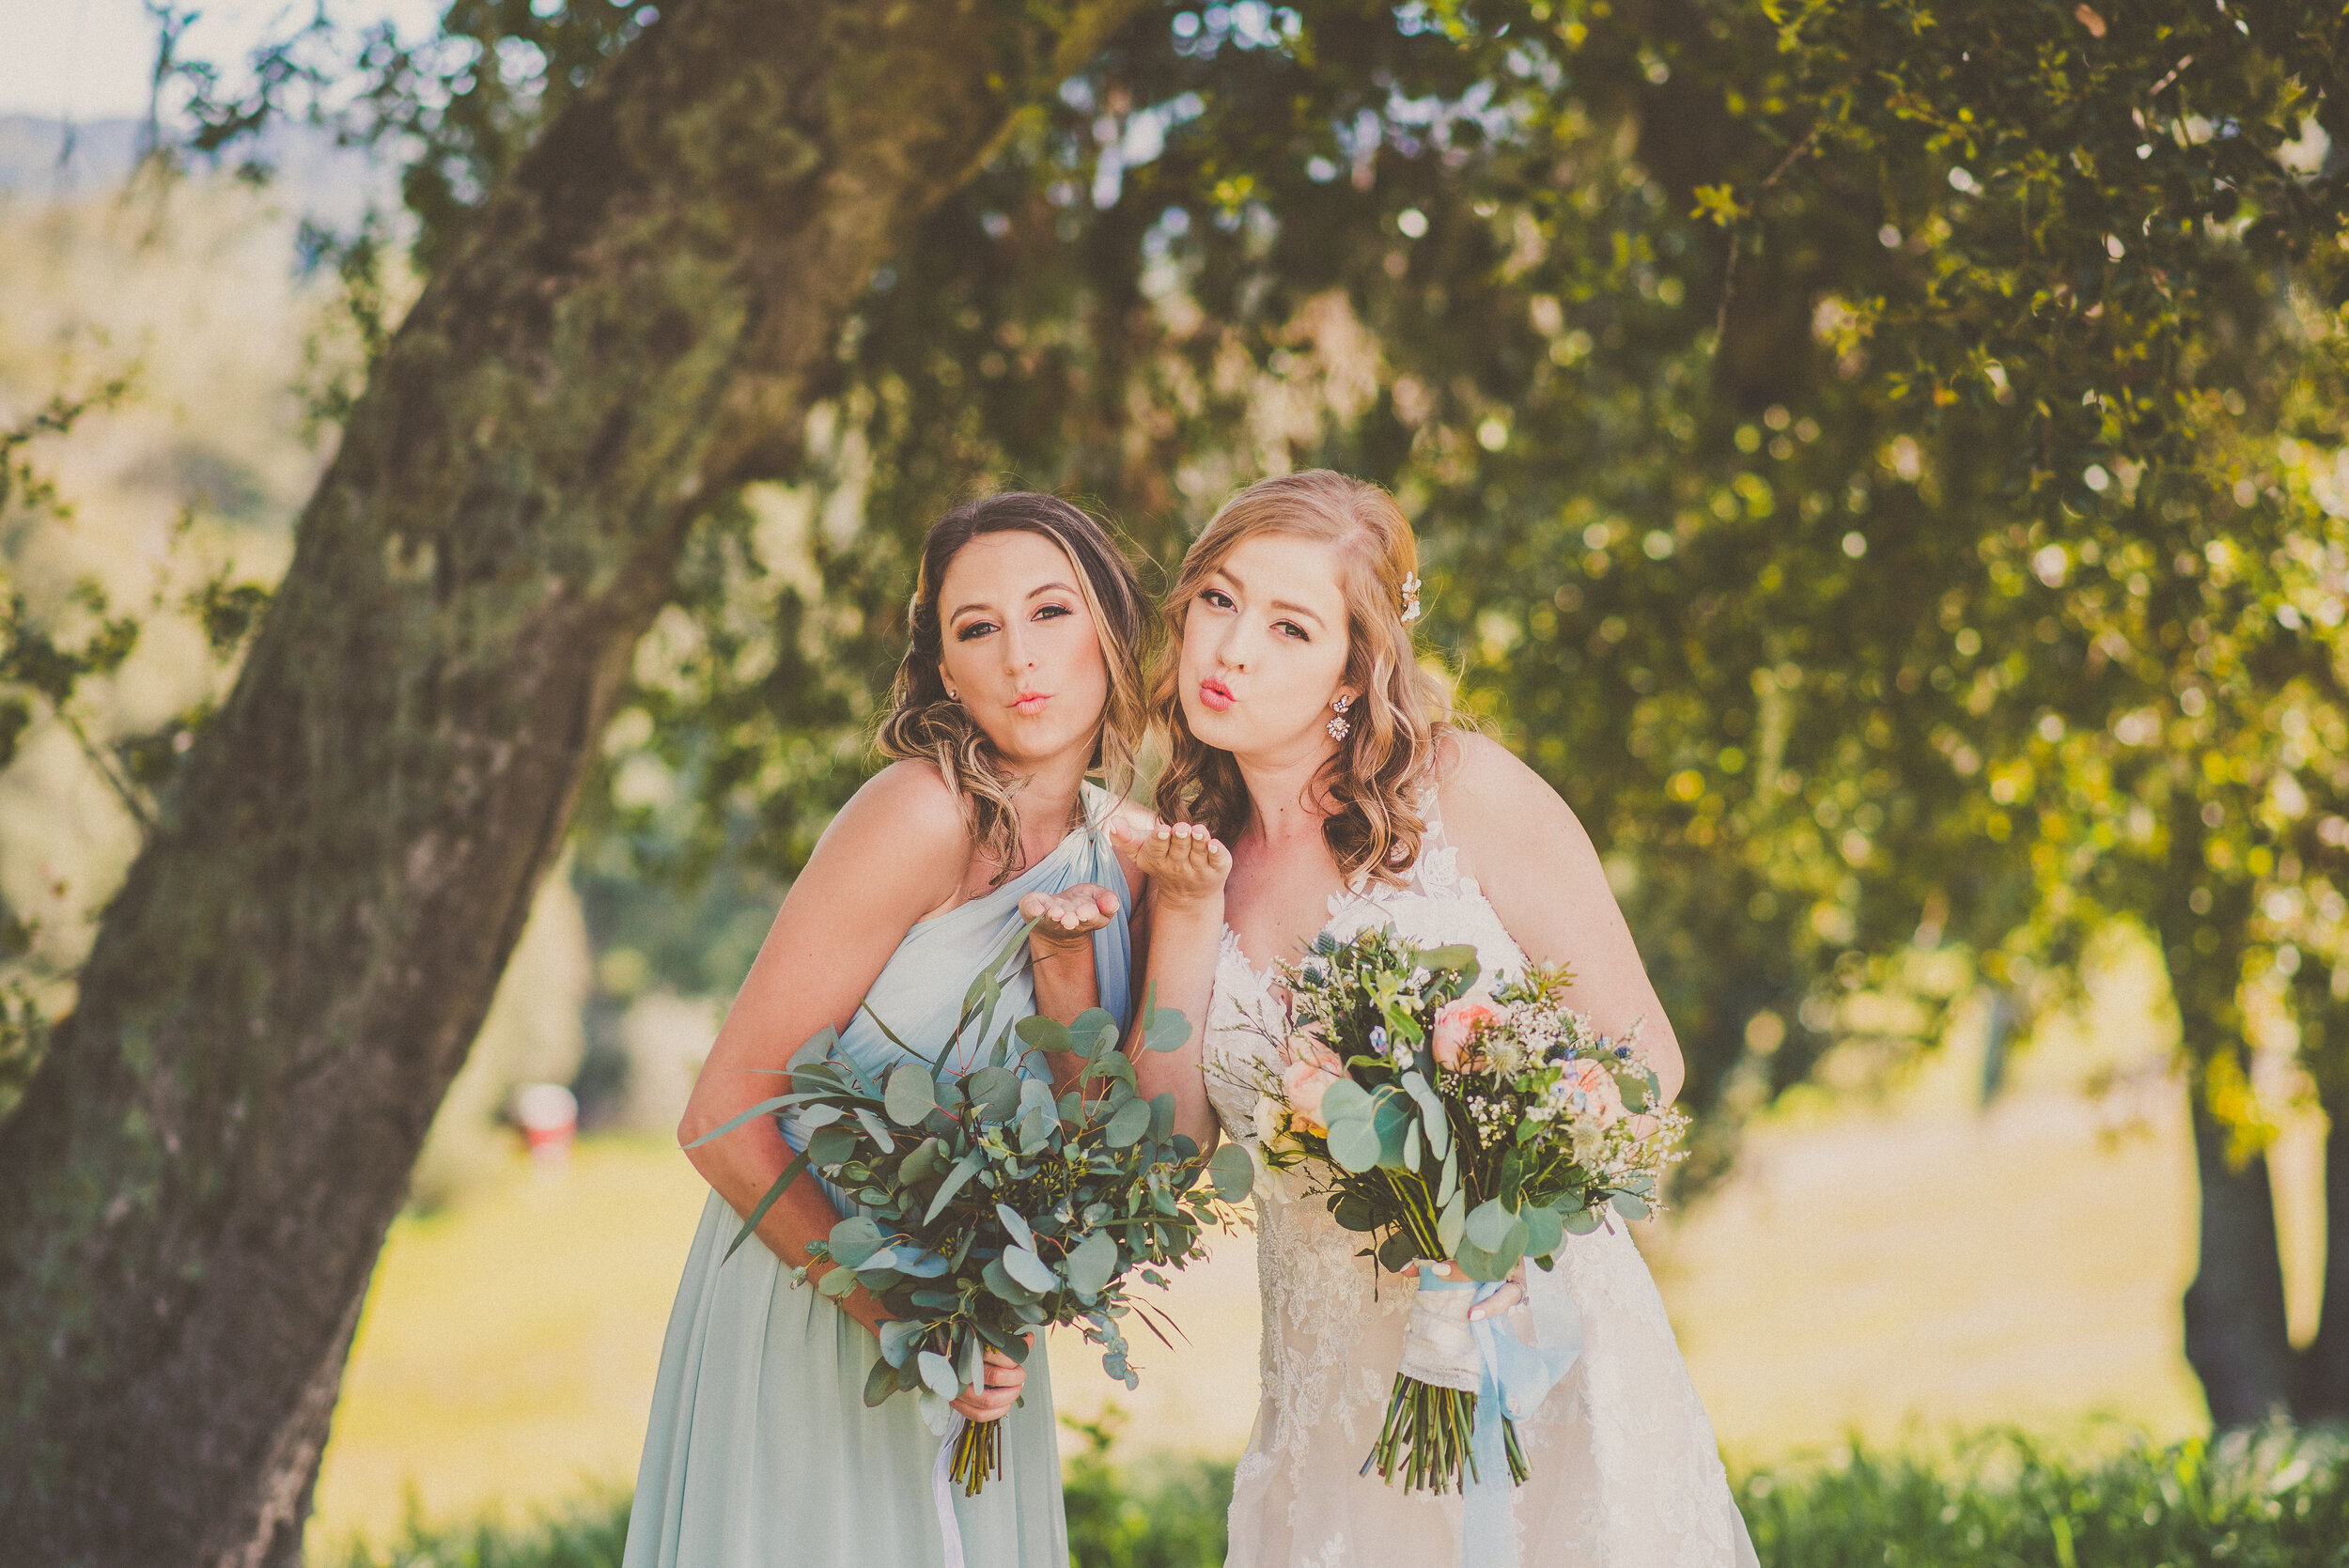 Kyle & Ariana - Wedding Party Portraits-45.jpg